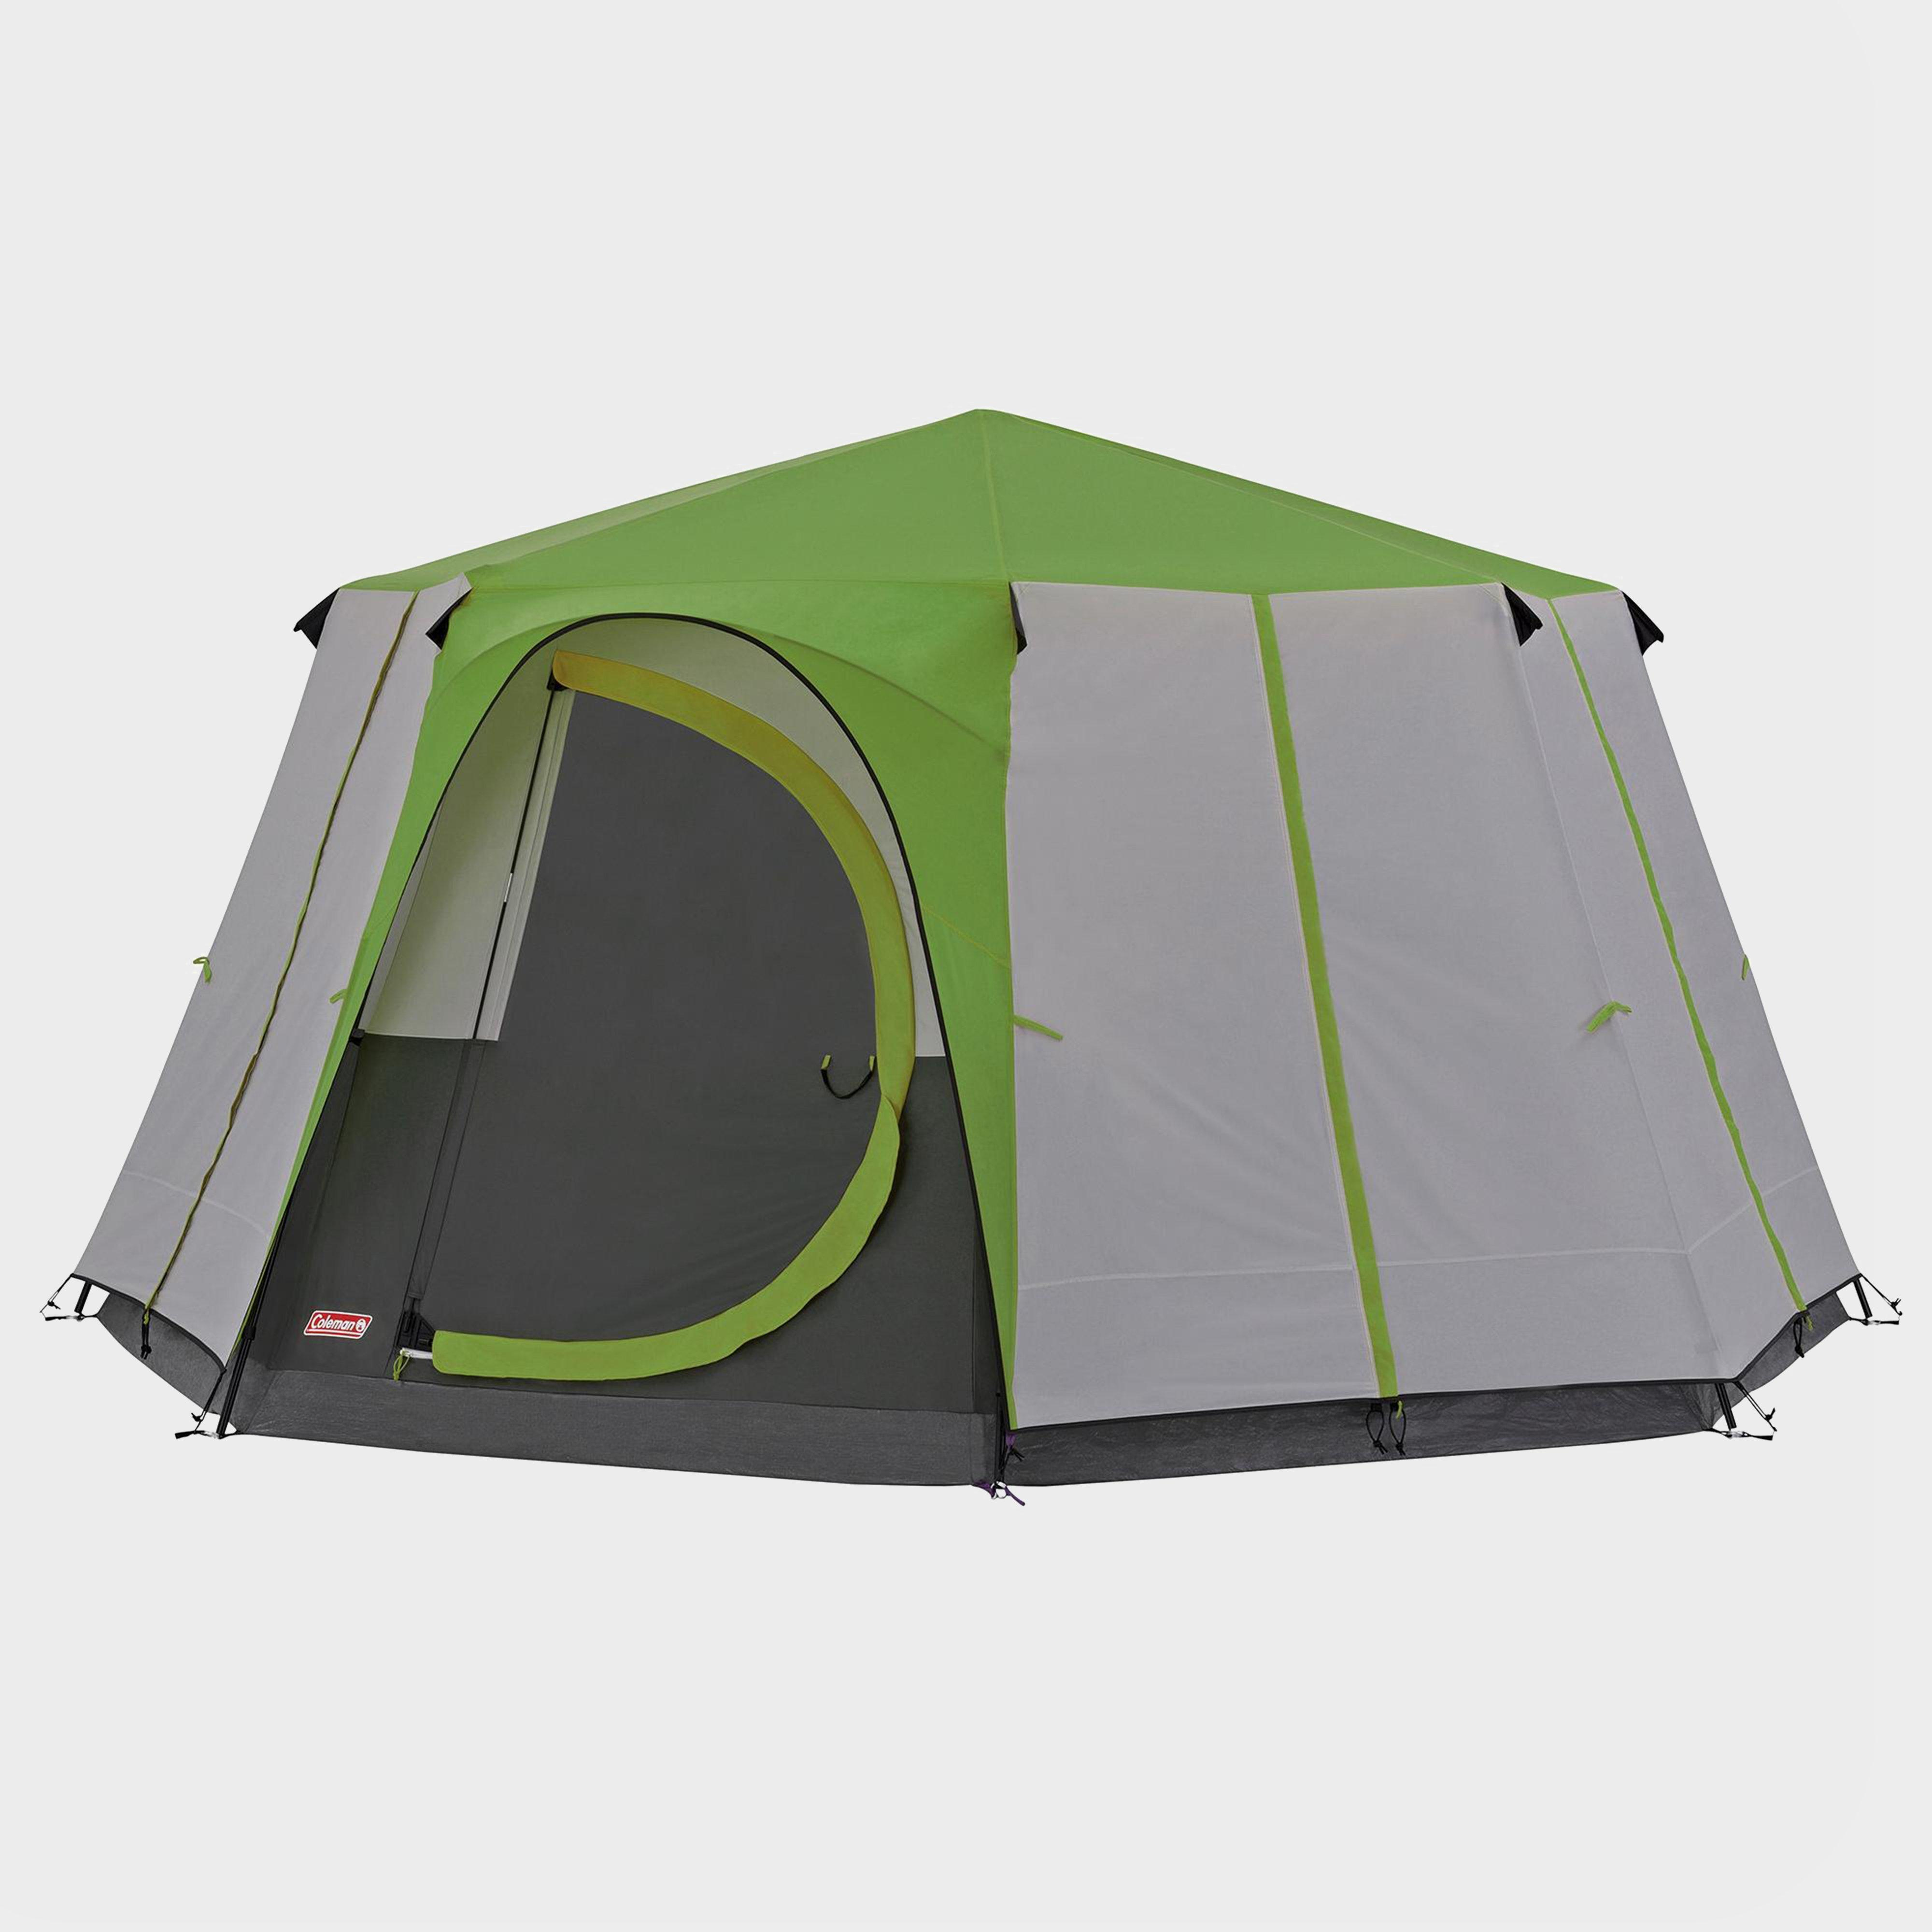 Coleman Cortes Octagon 8 Tent - Green/Grn, Green/GRN